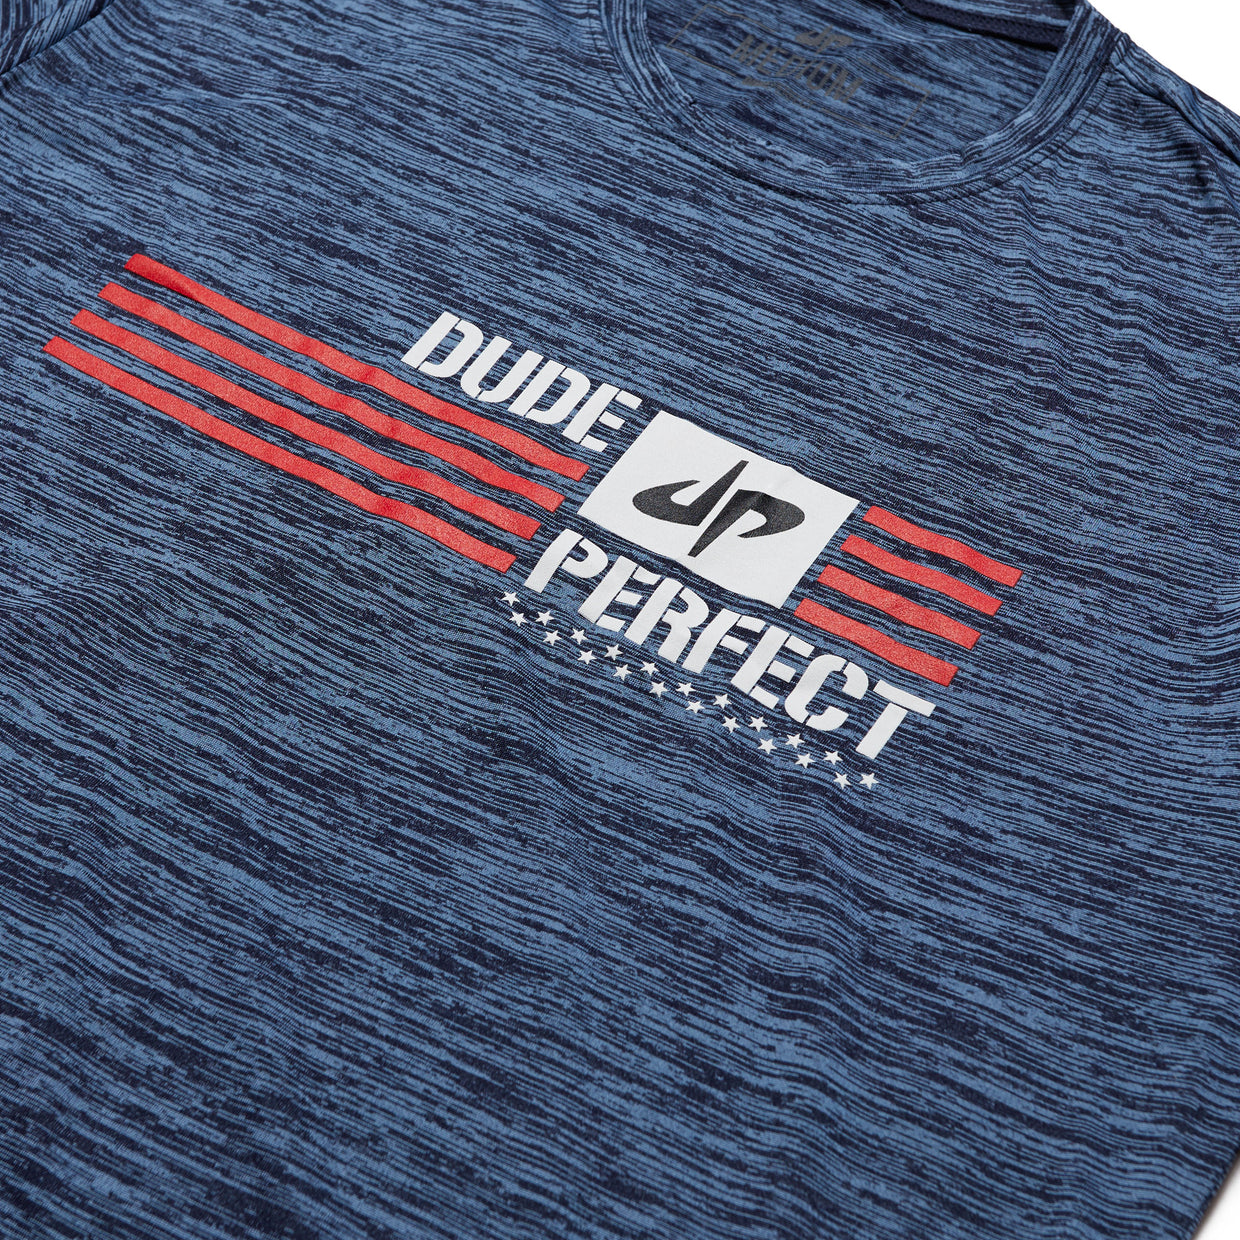 Stars and Stripes 5 Performance Tee